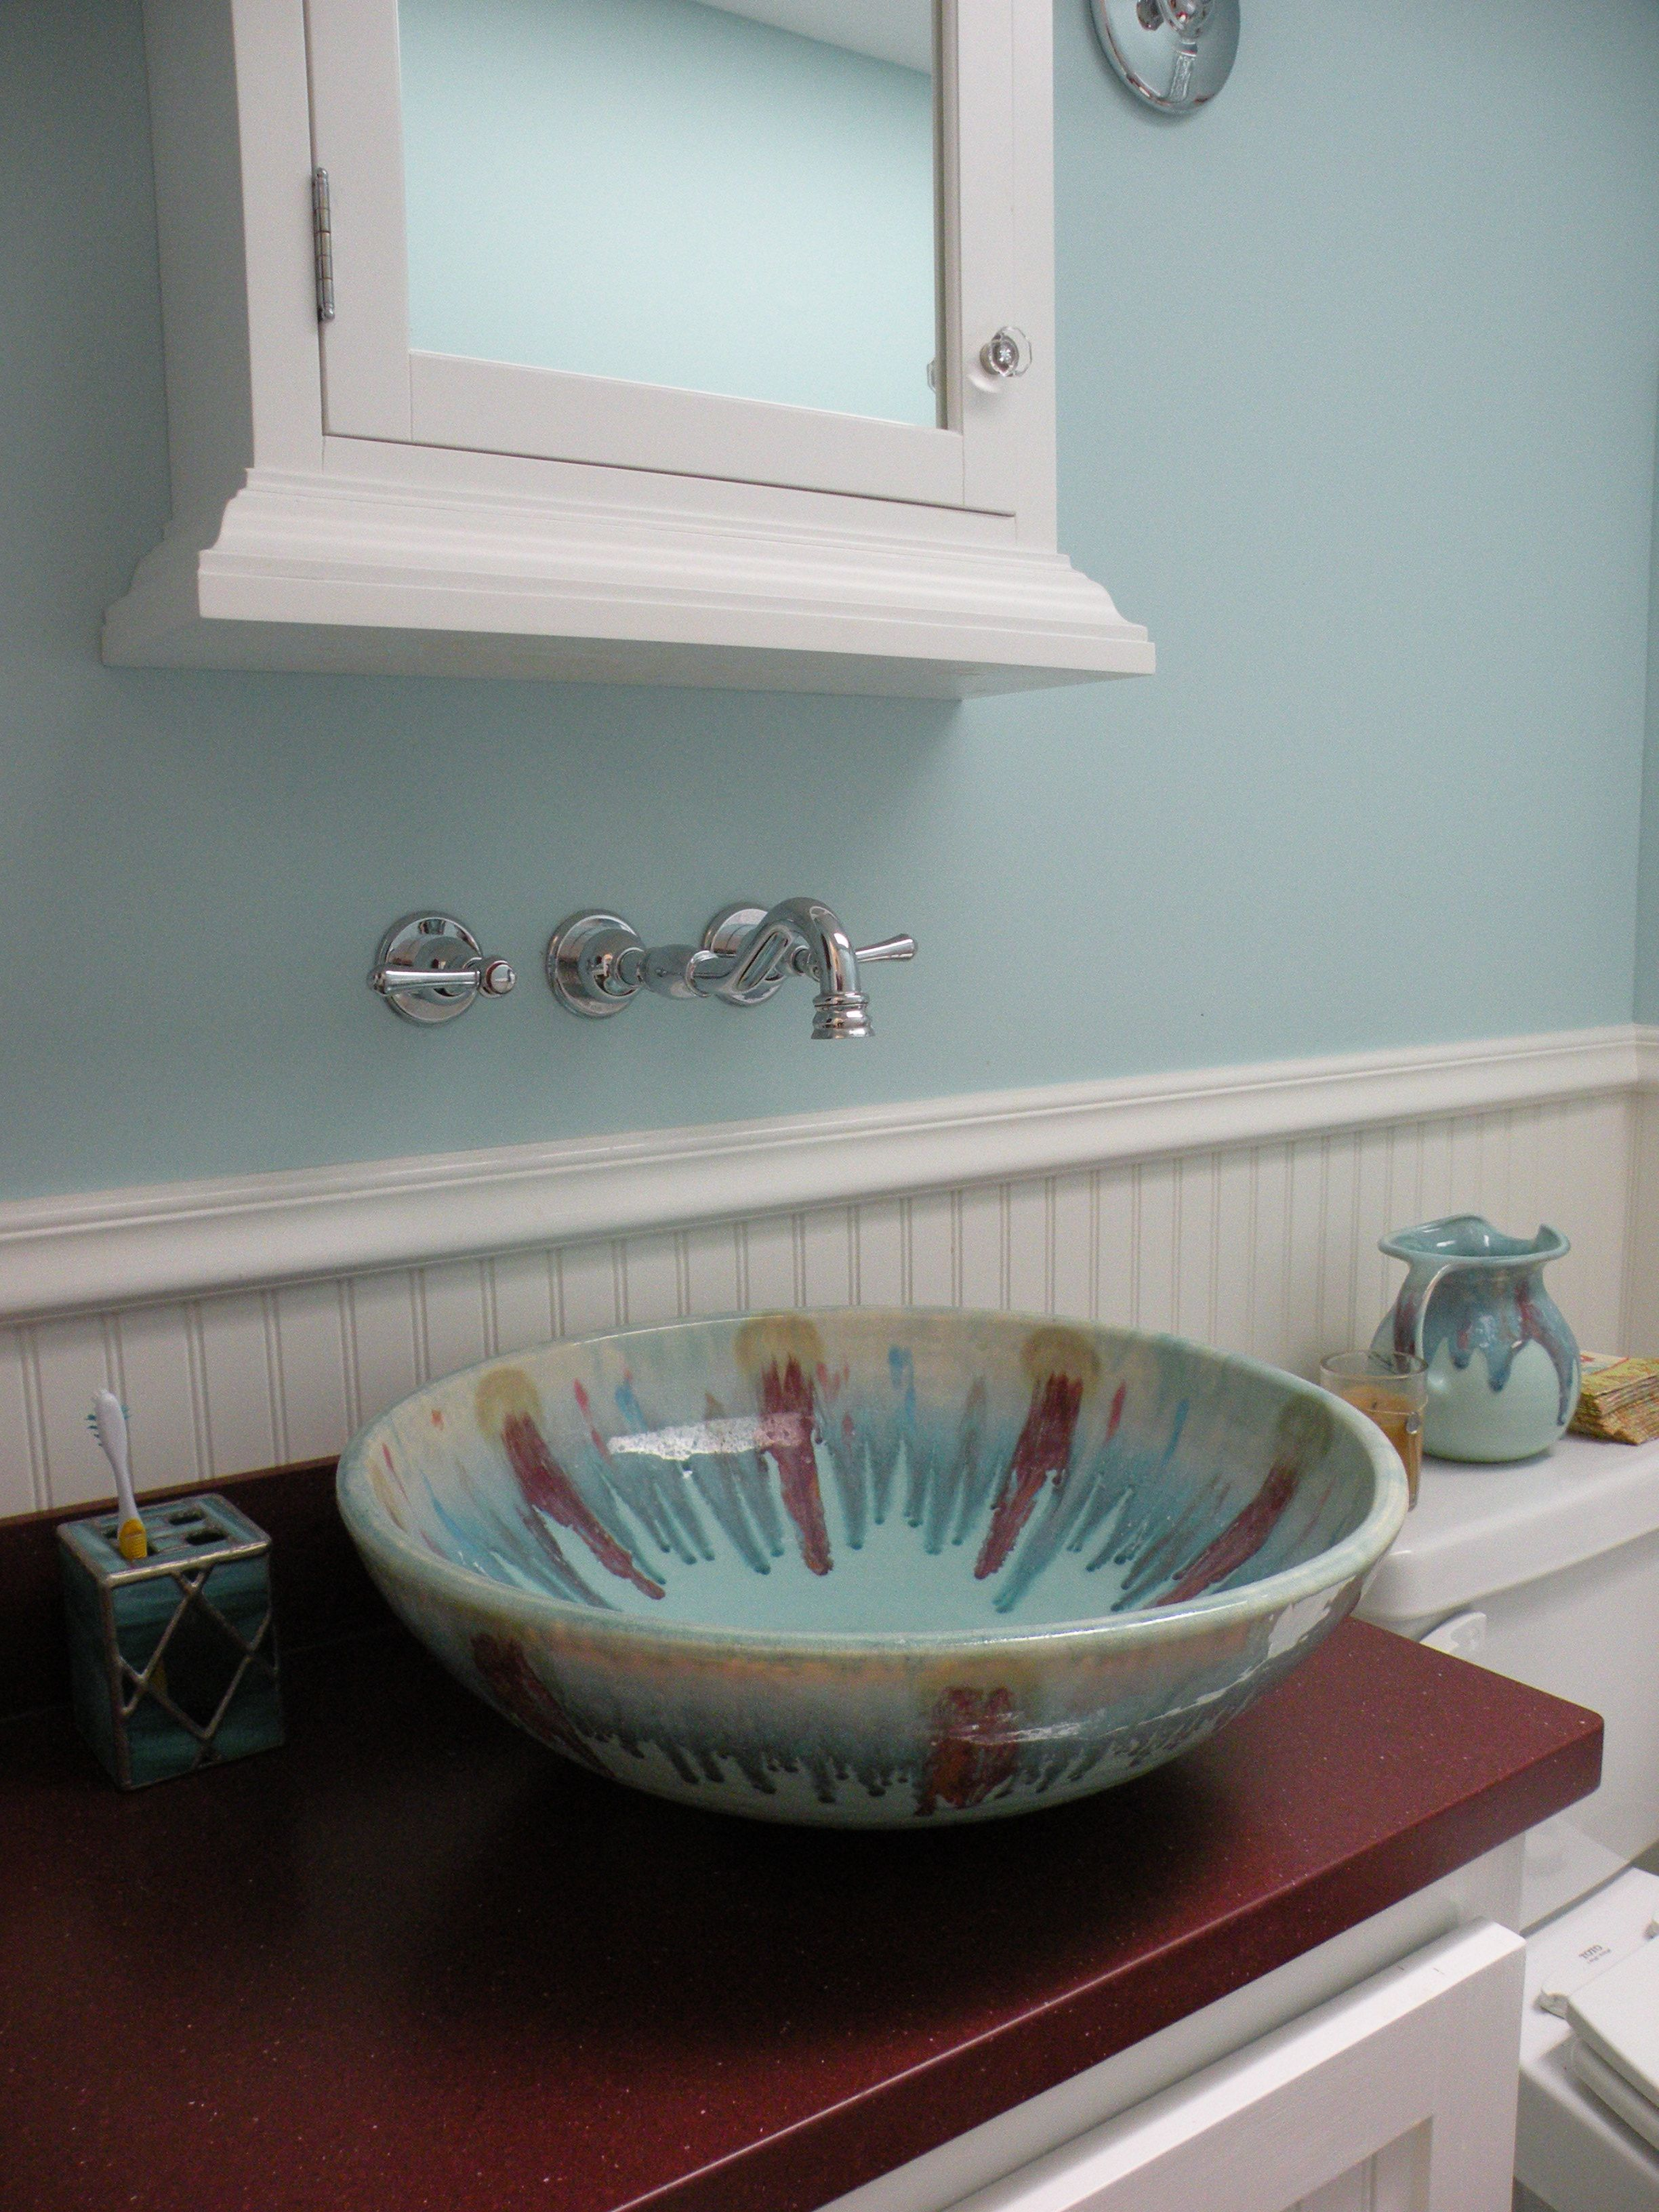 Handmade ceramic bowl was used for a sink.  Note the pitcher in the background.  They were both made by Dan Lasser  http://lasserceramics.com/  When you use a bowl for a sink, it's best to do a wallmount faucet.  The challenge is that then your mirror/medicine cabinet has to be hung higher so make sure you can still see yourself.  The countertop is corian in the red to pick up the red in the bowl.